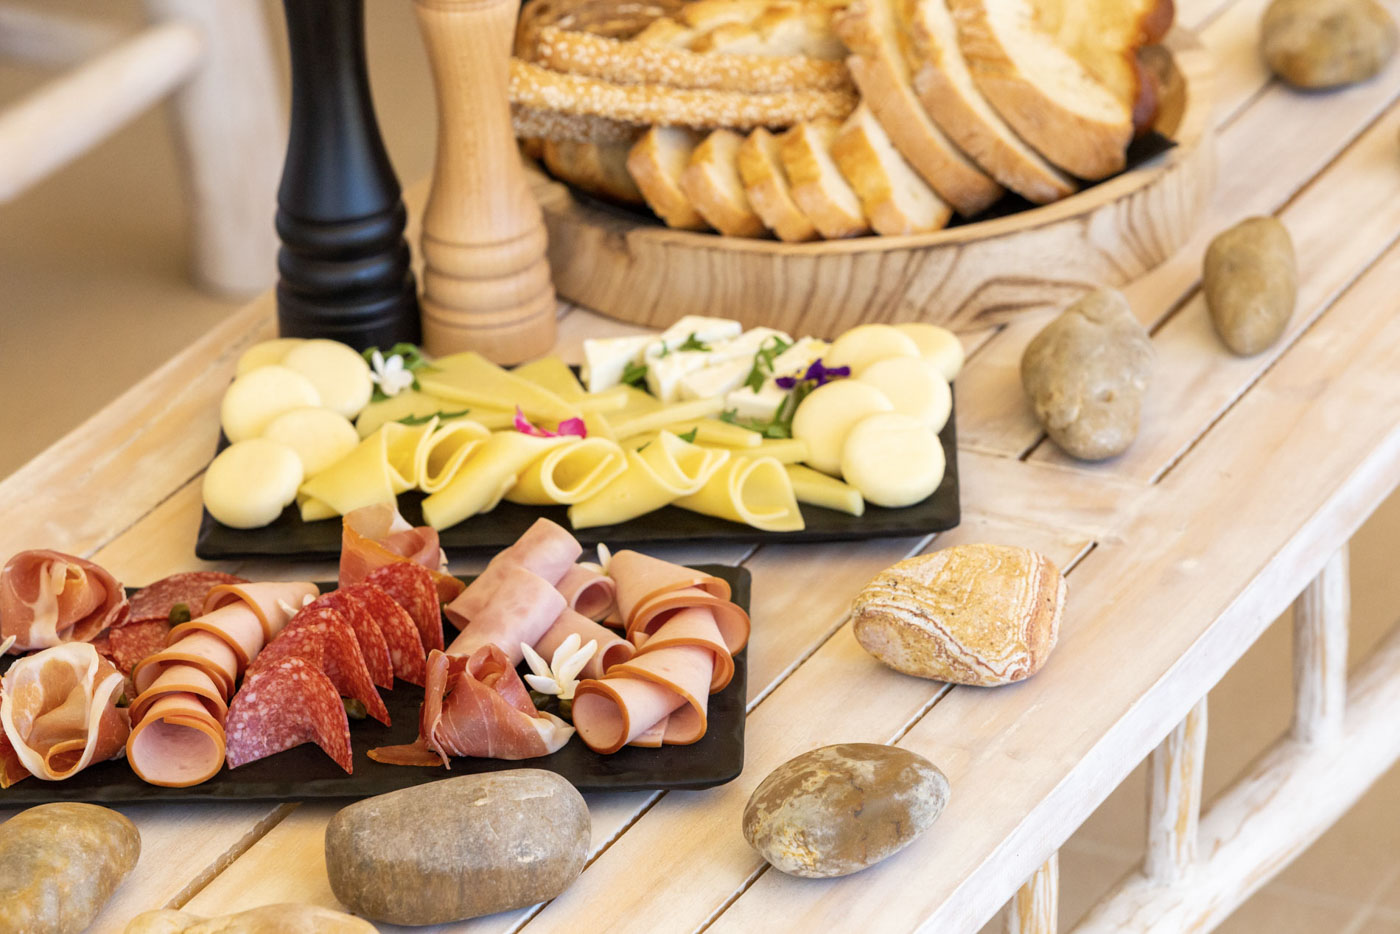 Elysian luxury hotel and spa Kalamata breakfast with cheese